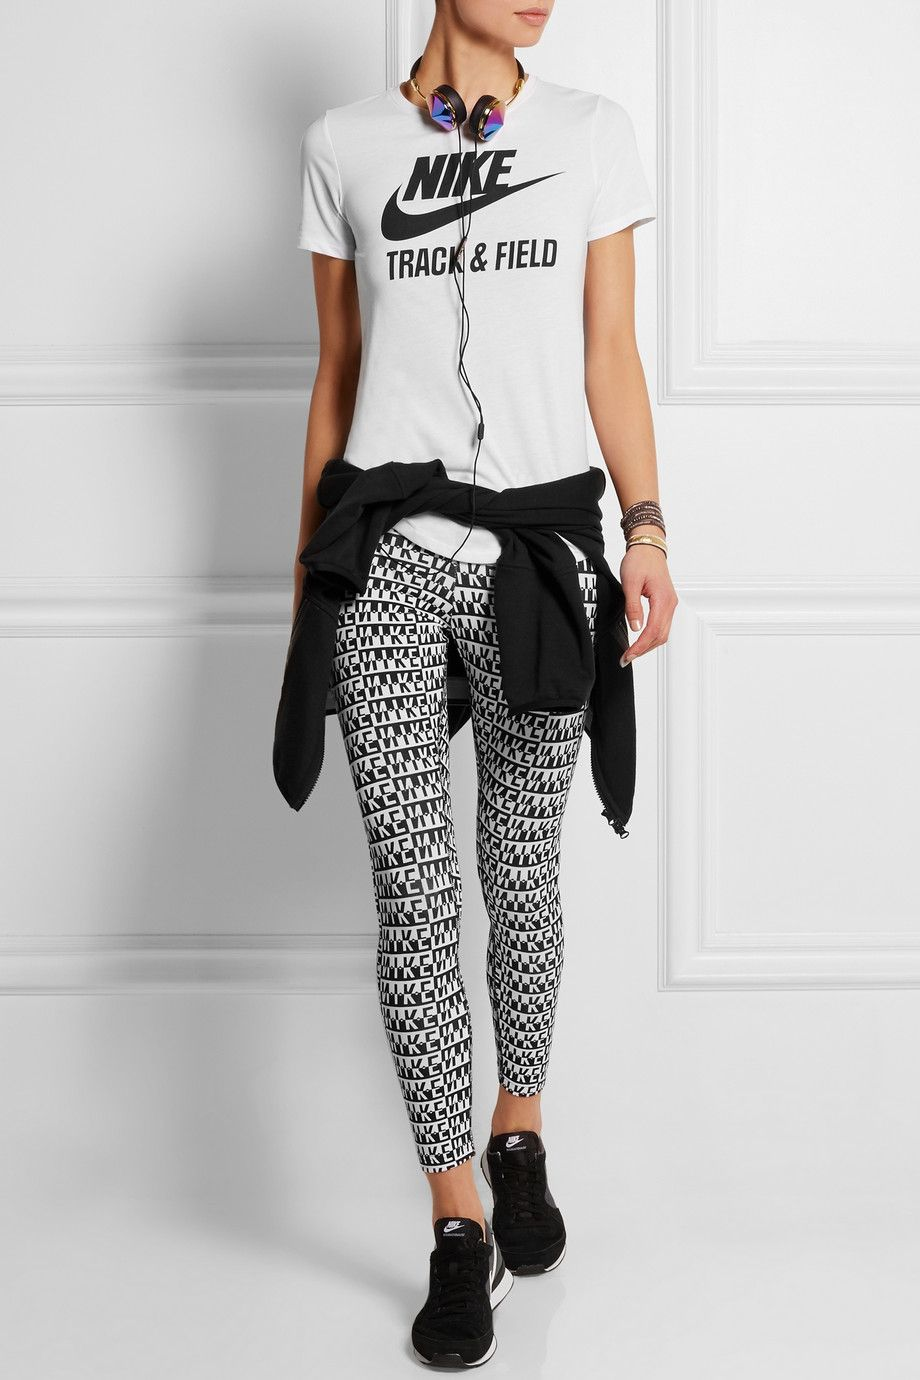 Nike outfit Designer outfits woman, Clothes design, Nike